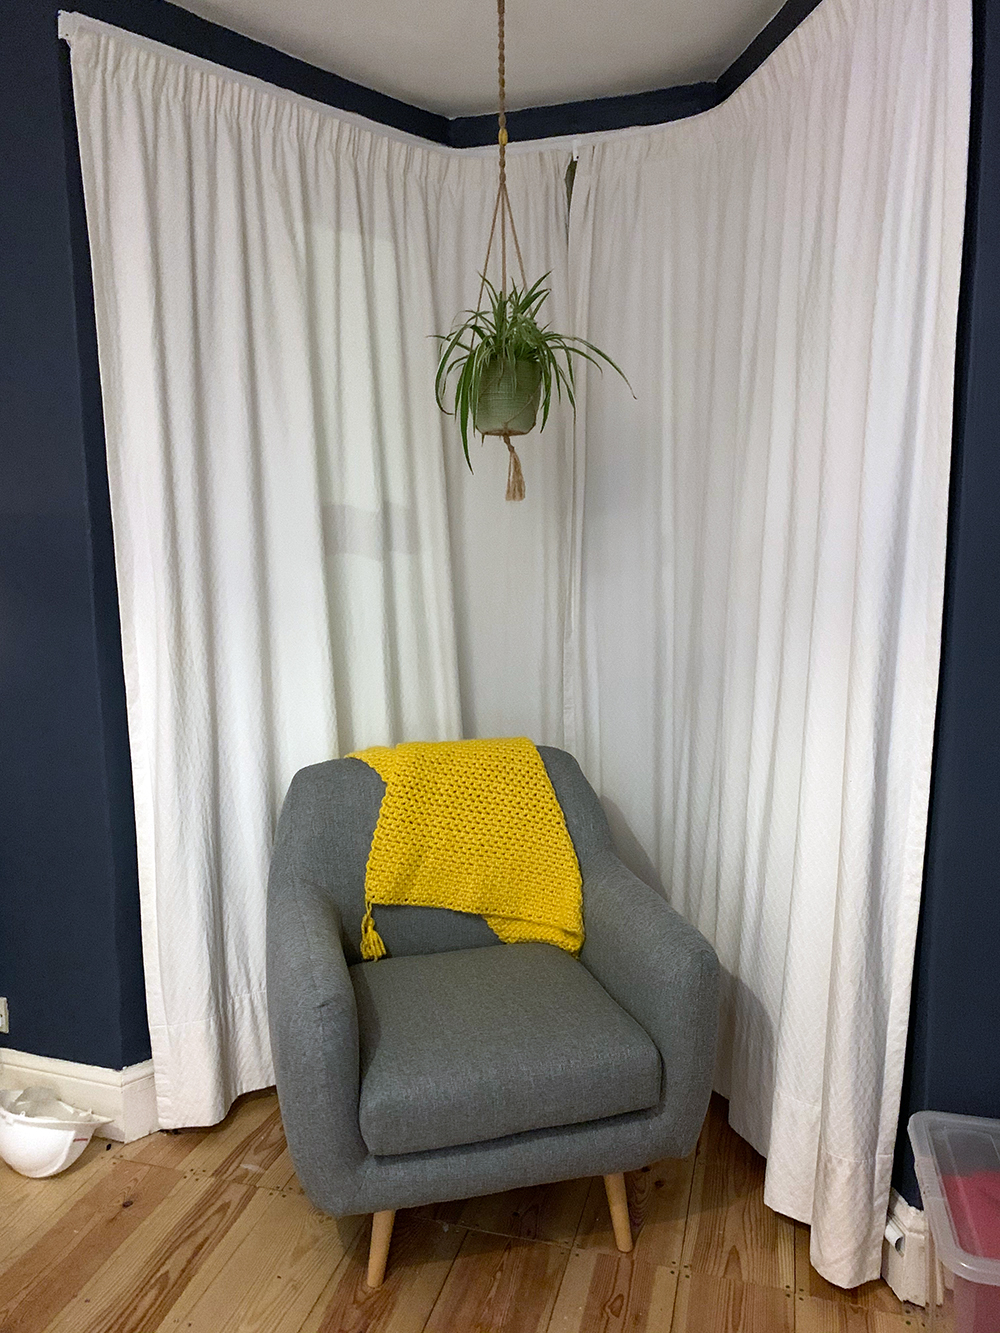 Revive grey armchair in retro style